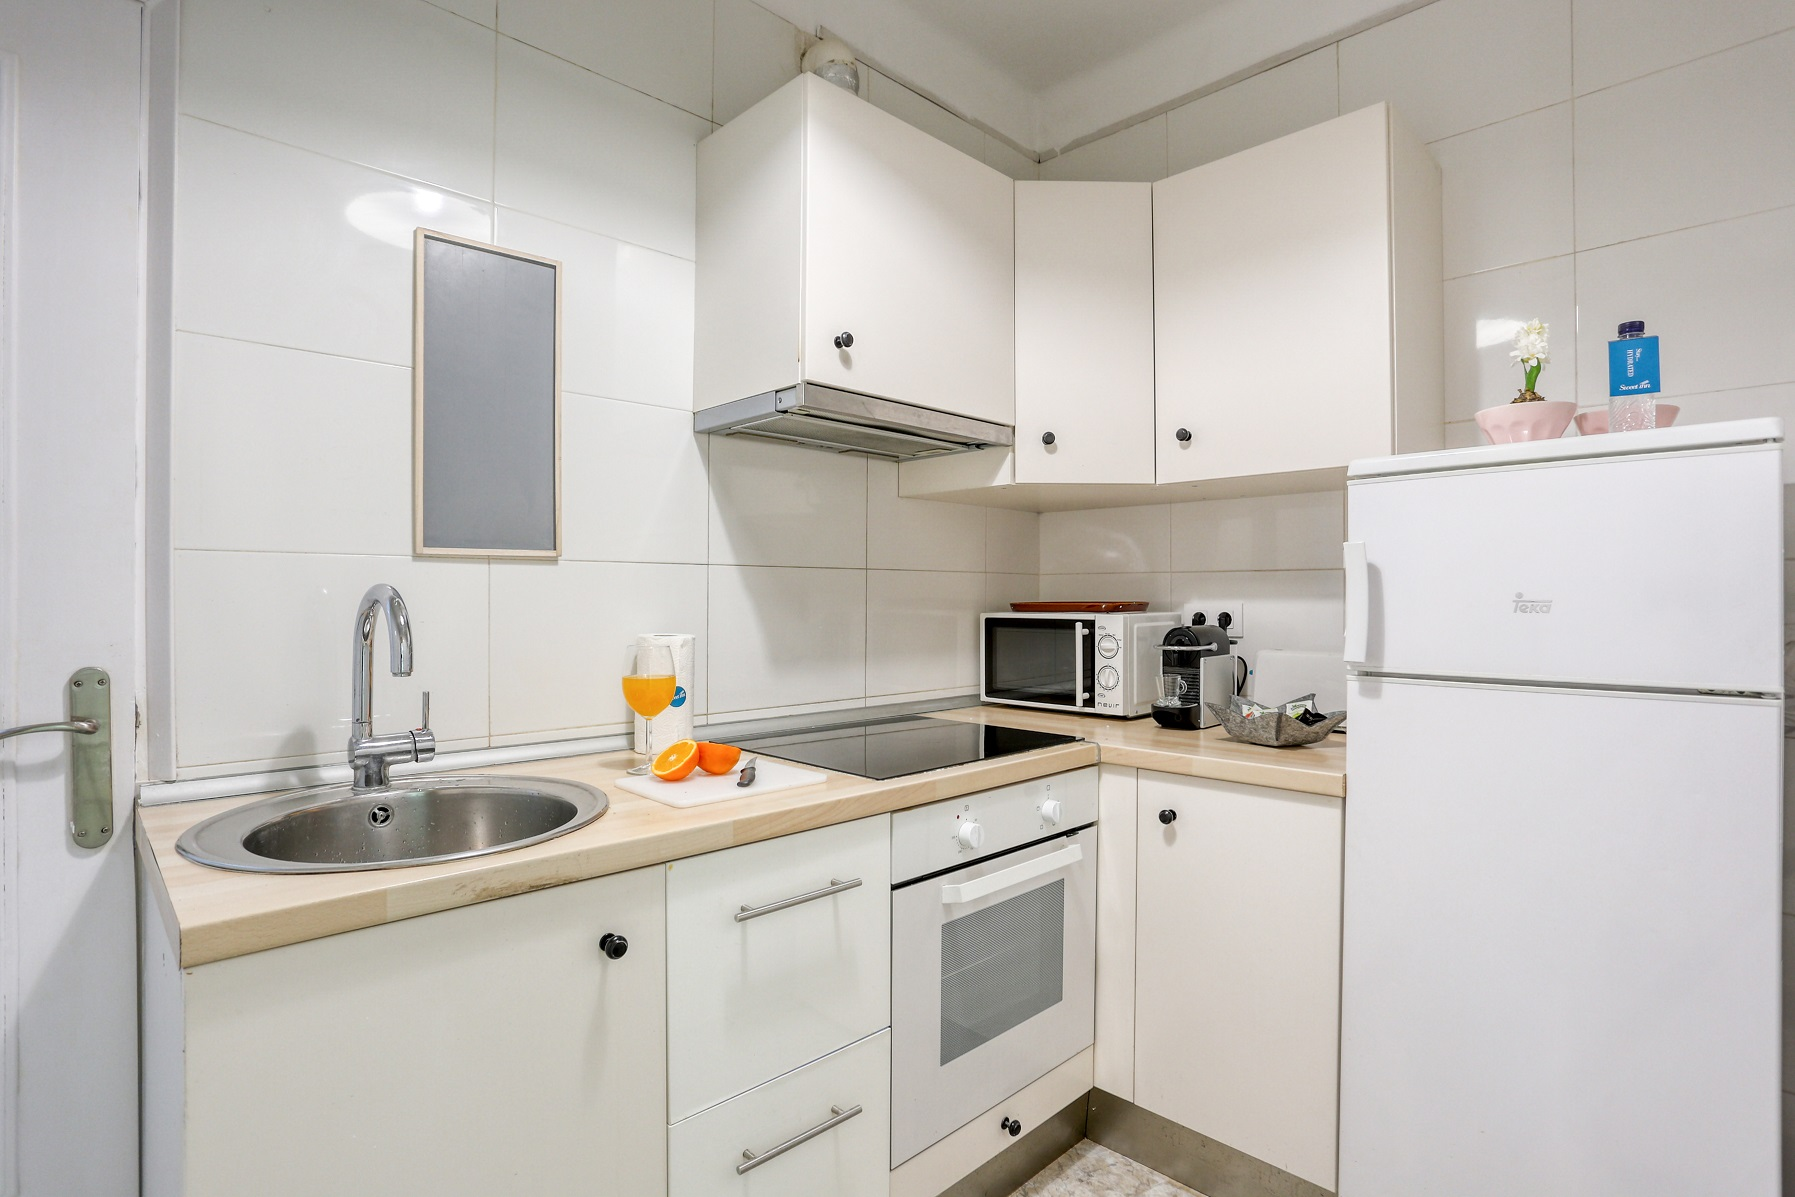 Kitchen space at Rocafort Apartments